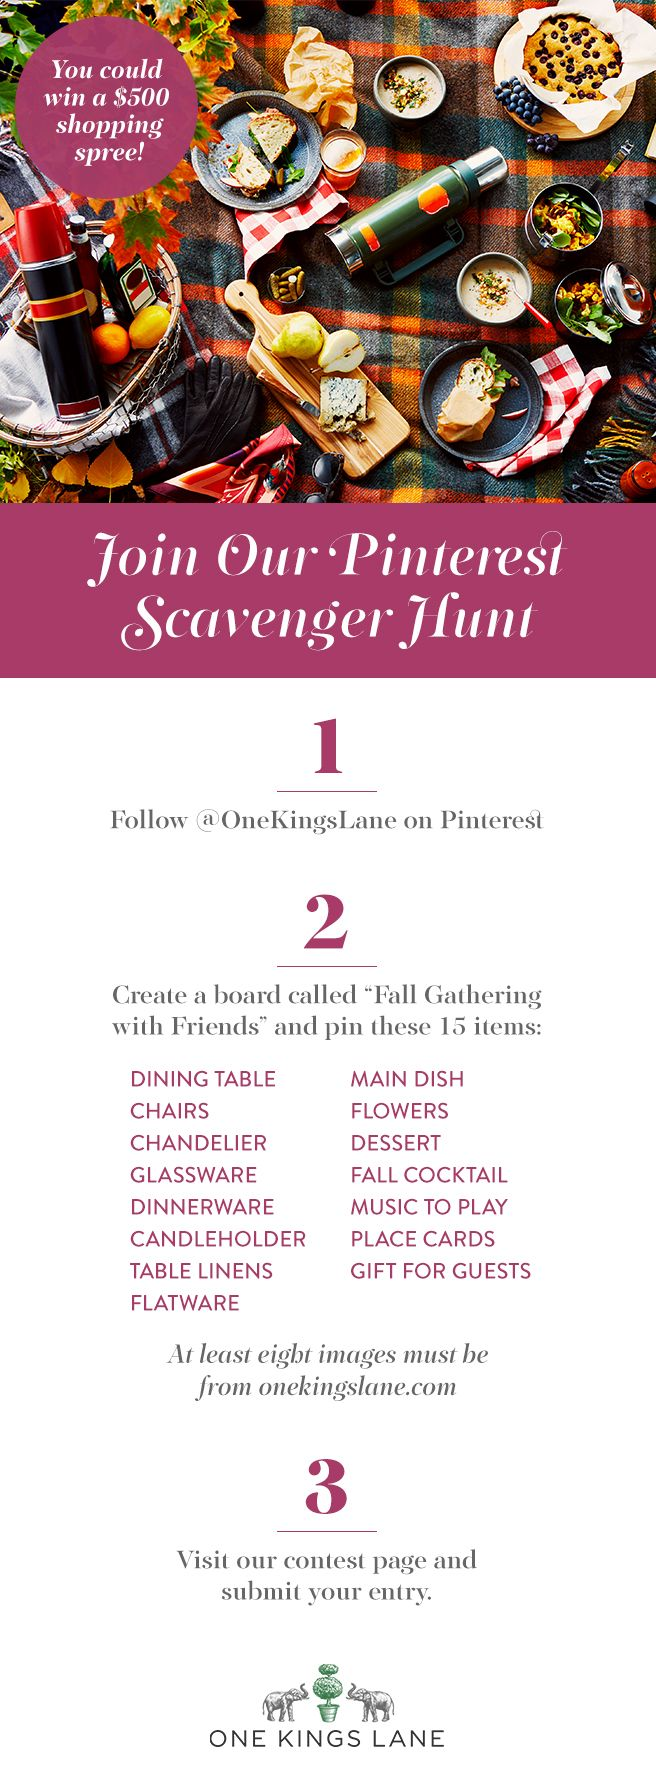 Join our Pinterest Scavenger Hunt for a chance to win a $500 shopping spree on One Kings Lane. Follow the three easy steps above and head here for more details: https://www.onekingslane.com/brands/fall-gathering/